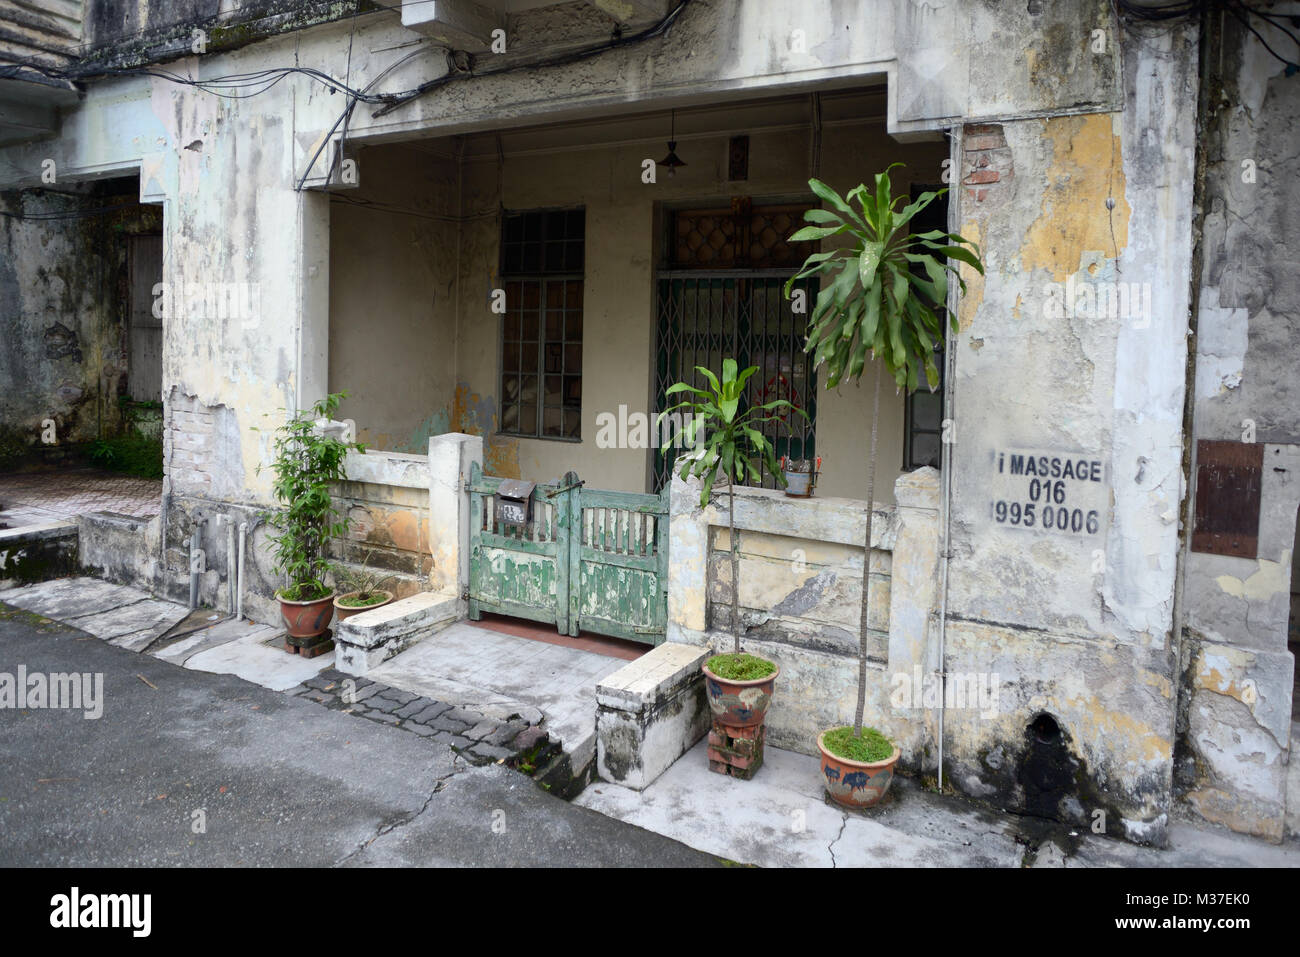 Kuala Lumpur, Malaysia - November 1, 2014: Facade of the old house in colonial style on one of streets of Kuala - Stock Image